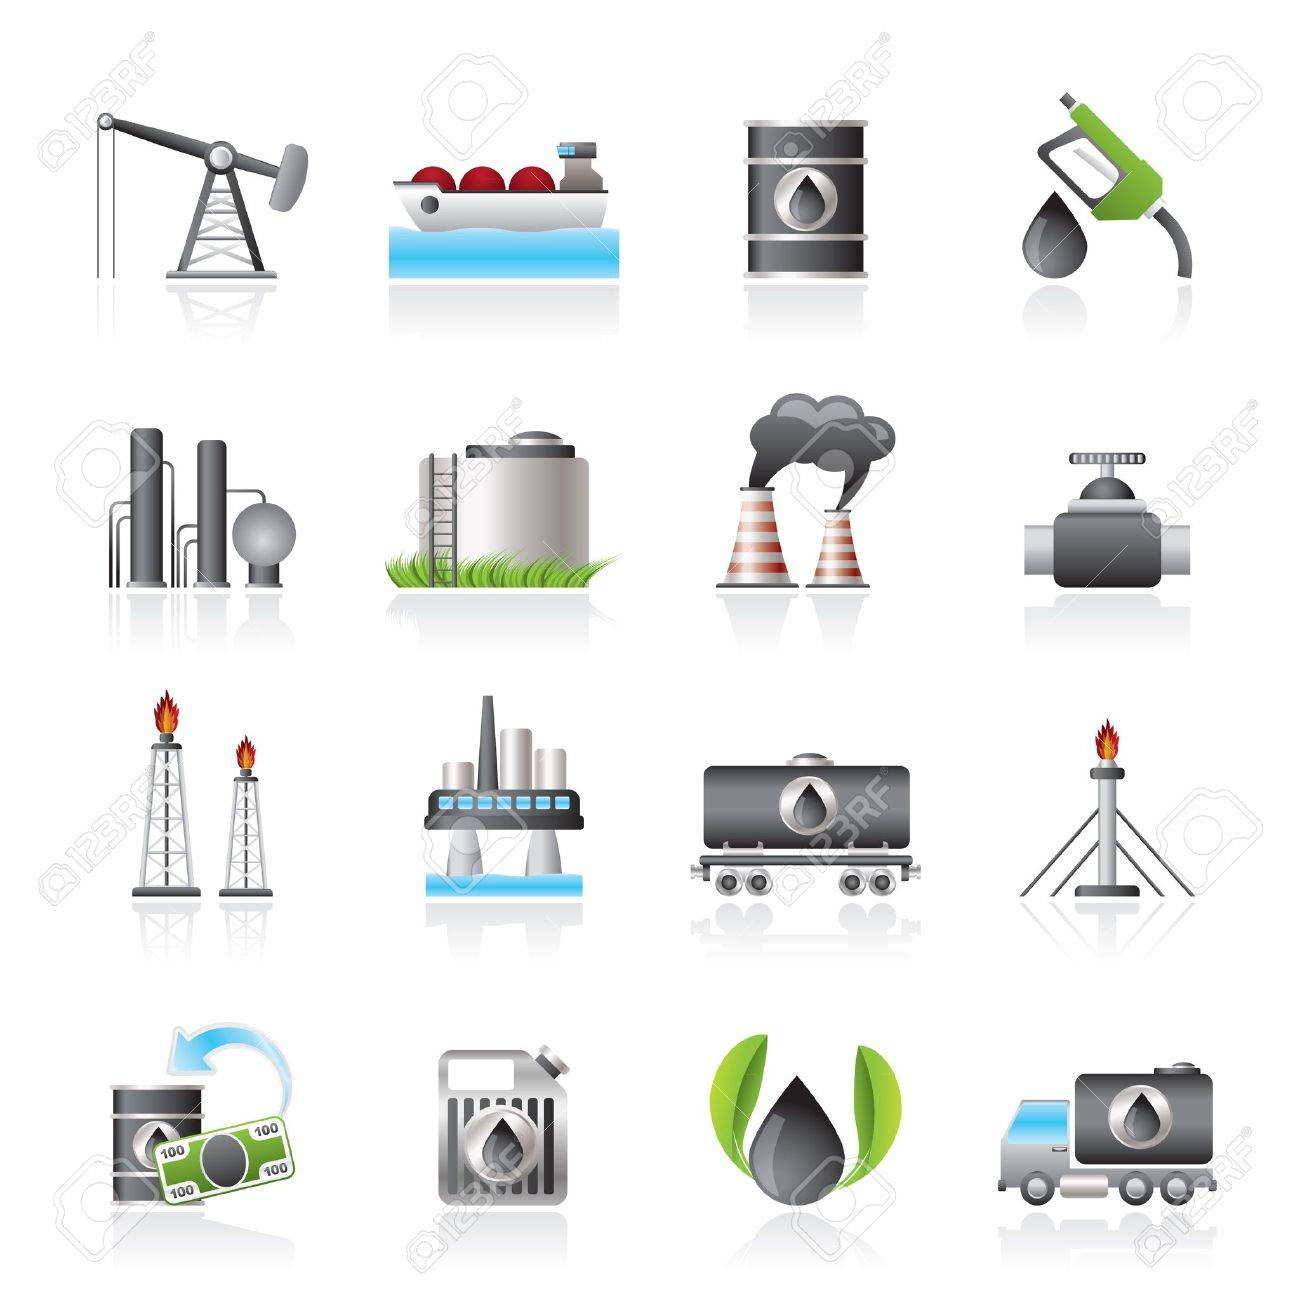 Petrol and oil industry icons - 17359916